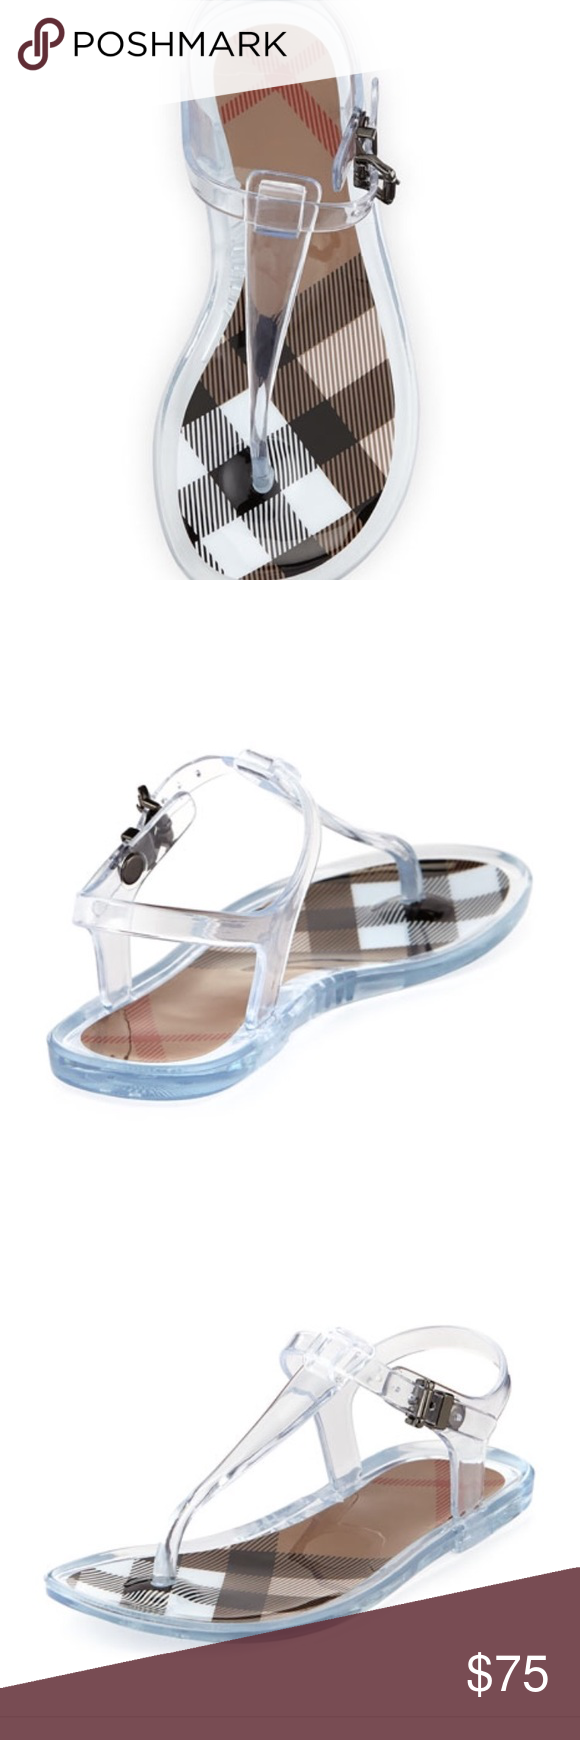 9246aaf442b Authentic Burberry kids clear thong sandal size 27 Preowned Burberry thong  sandals Size 27 Worn a